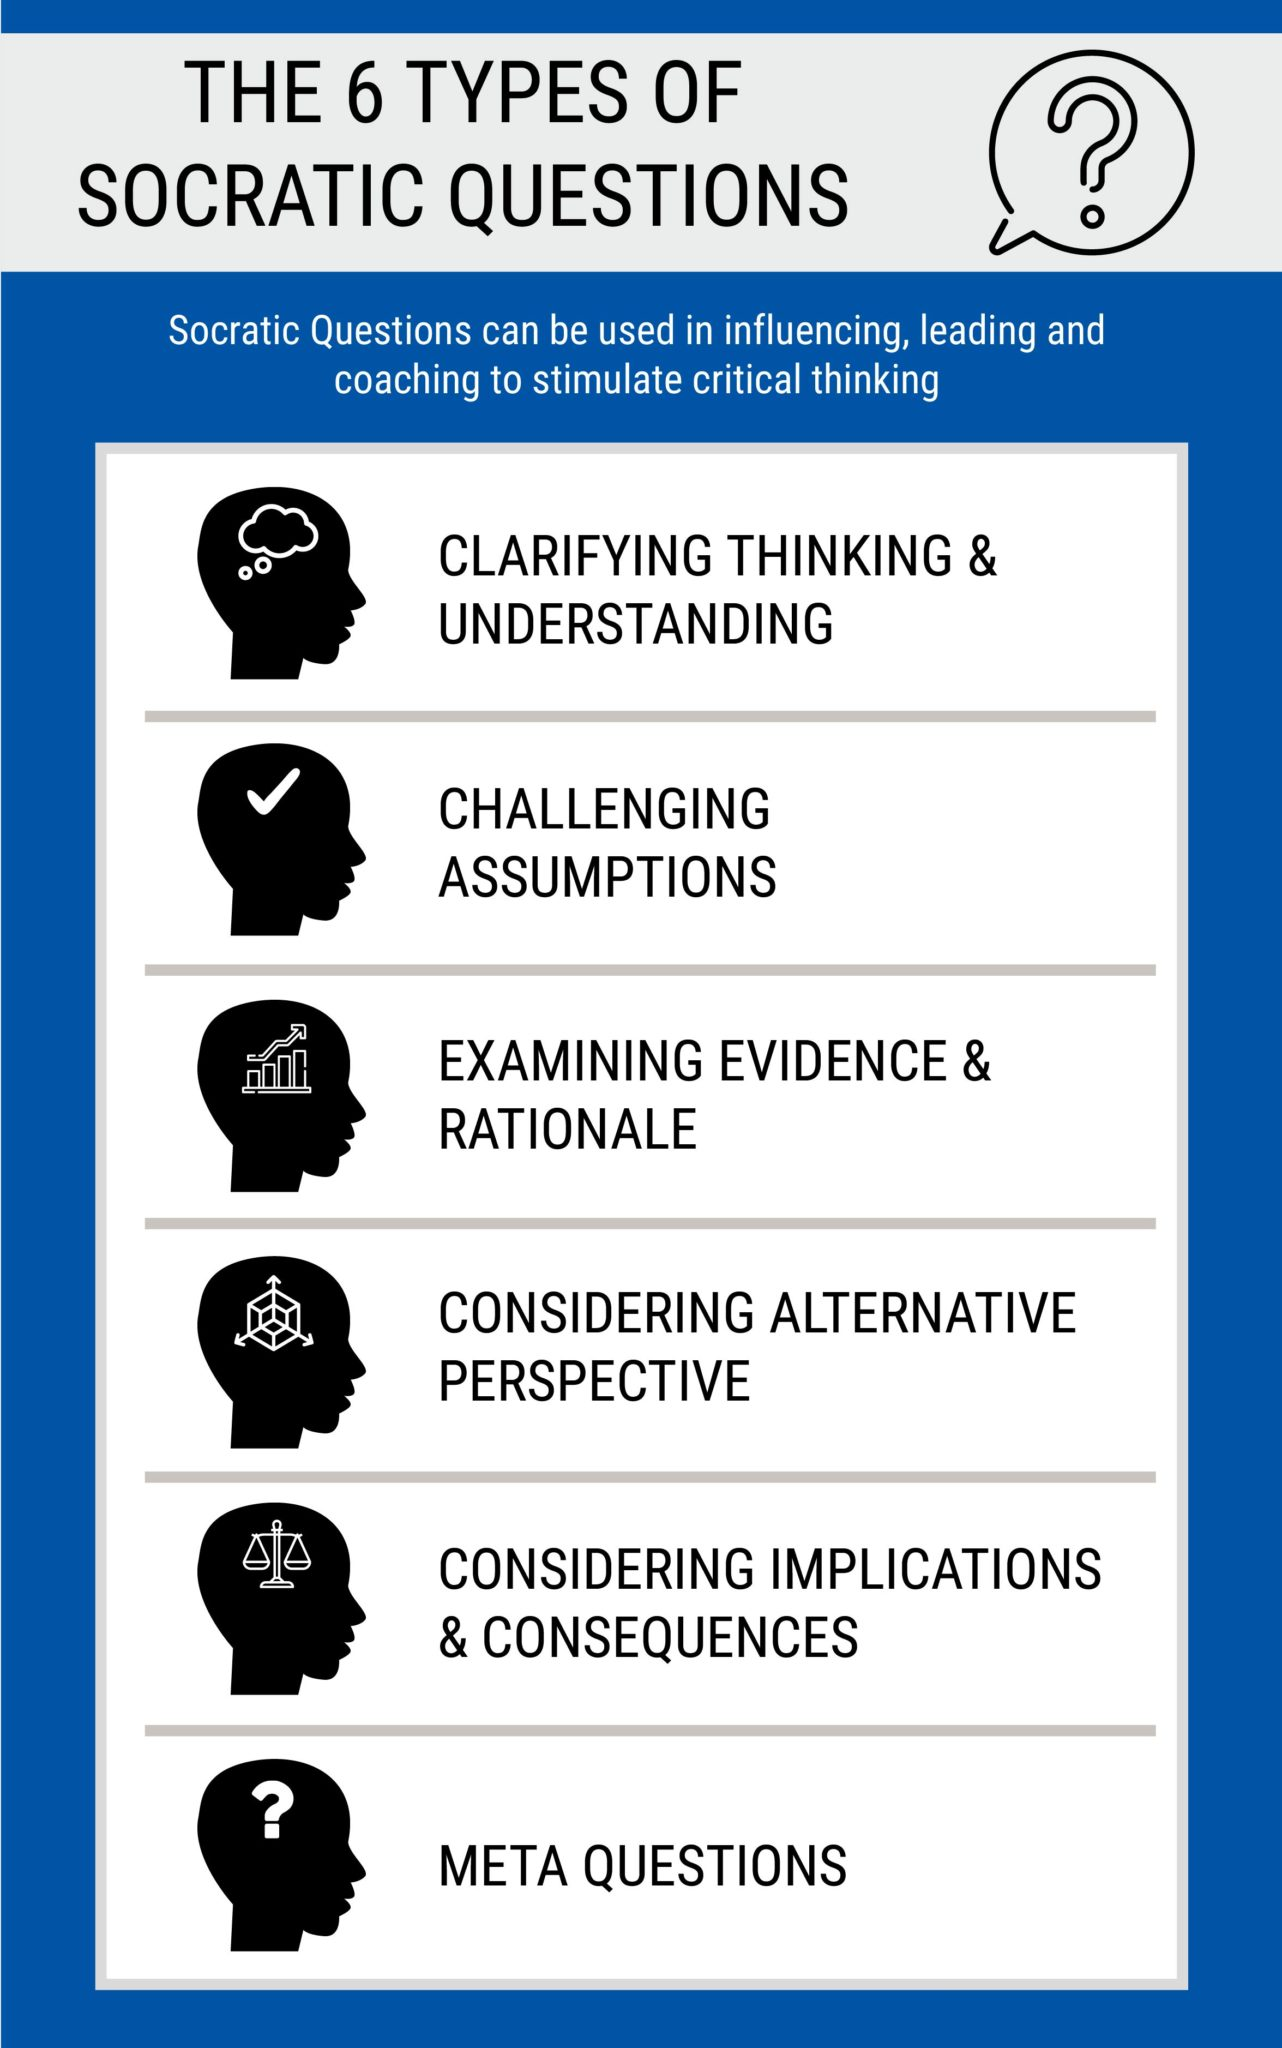 THE 6 TYPES OF SOCRATIC QUESTIONS